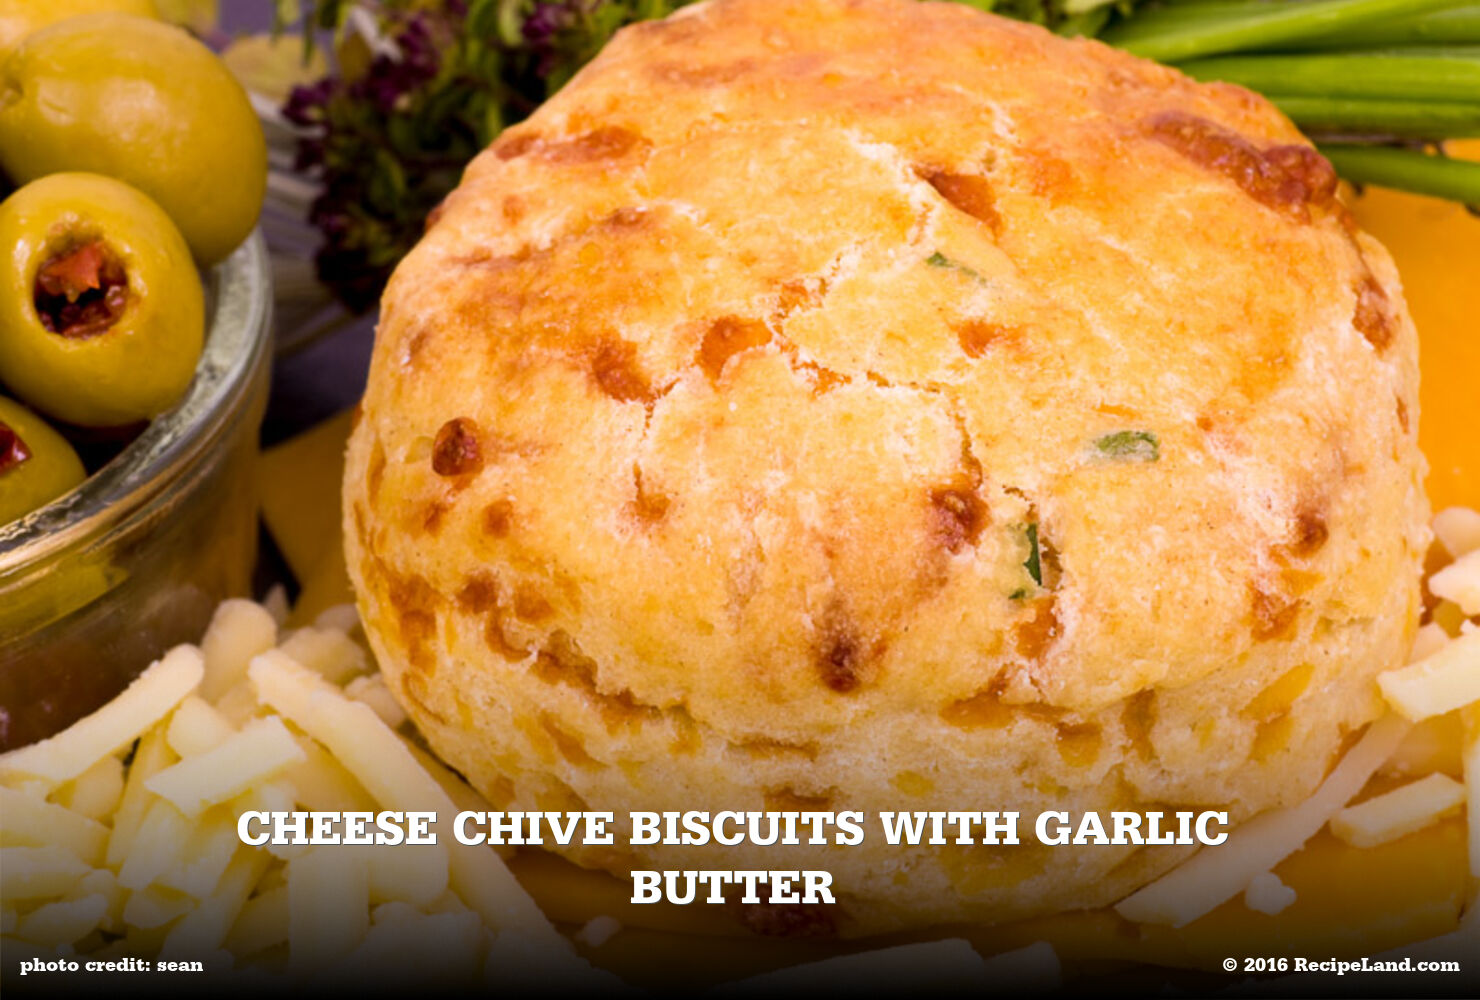 Cheese Chive Biscuits with Garlic Butter